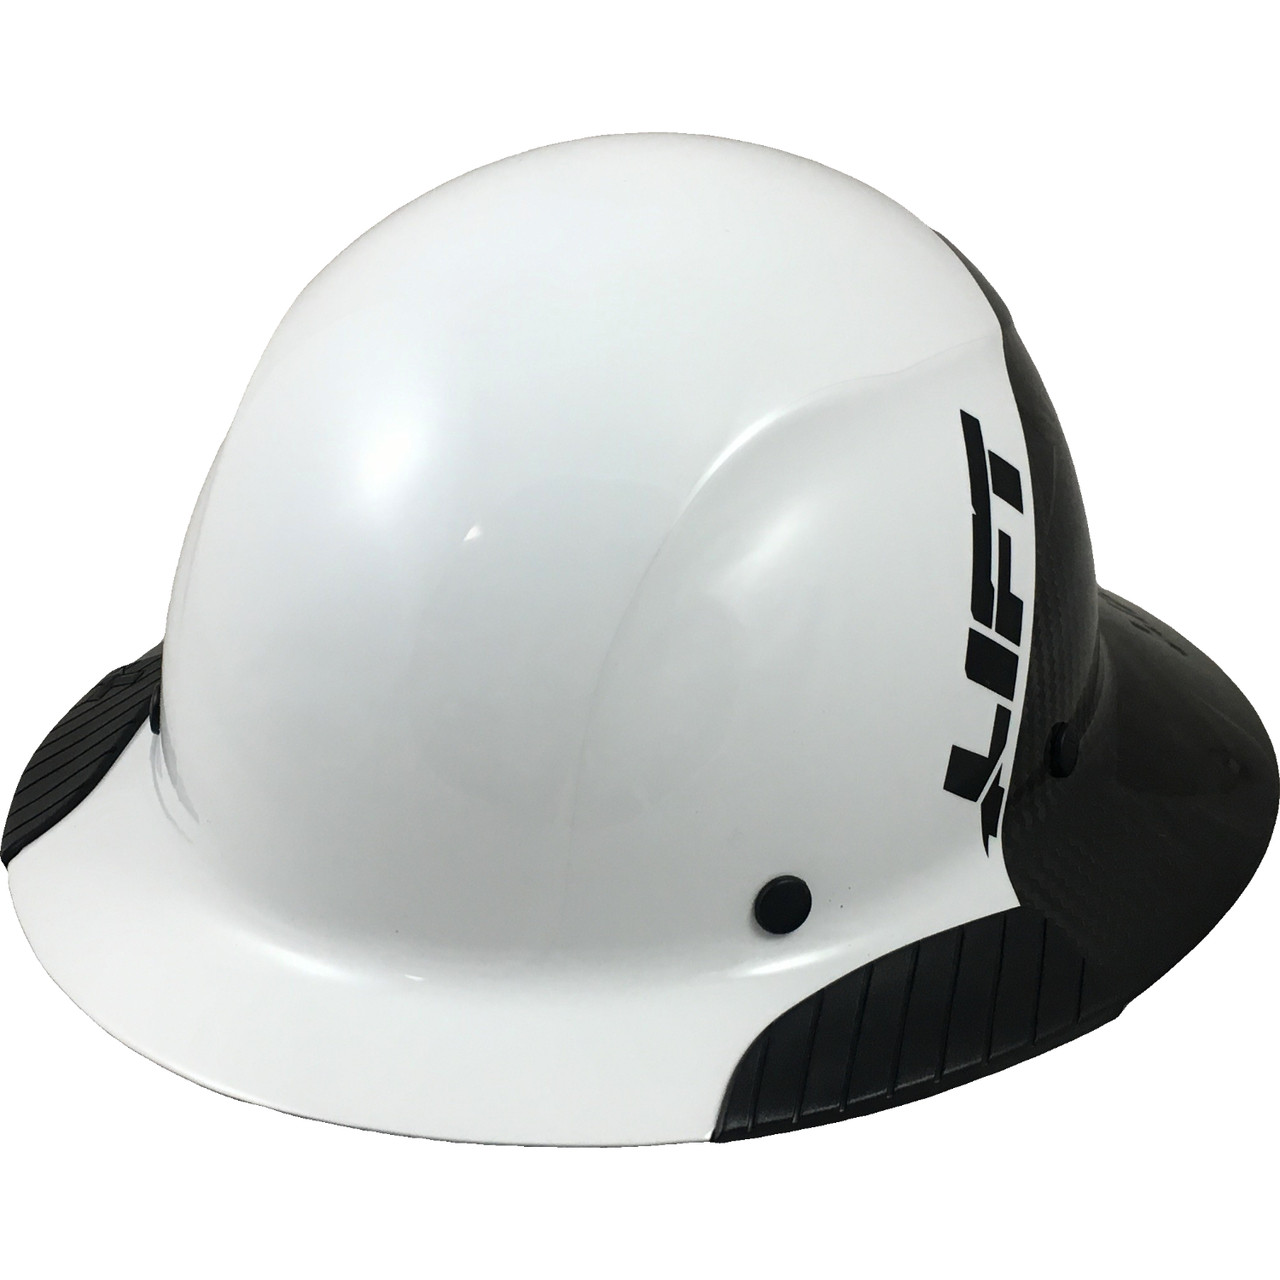 bc92637e Loading zoom. Actual Carbon Fiber Hard Hat - Full Brim Glossy Black and  White - Oblique View